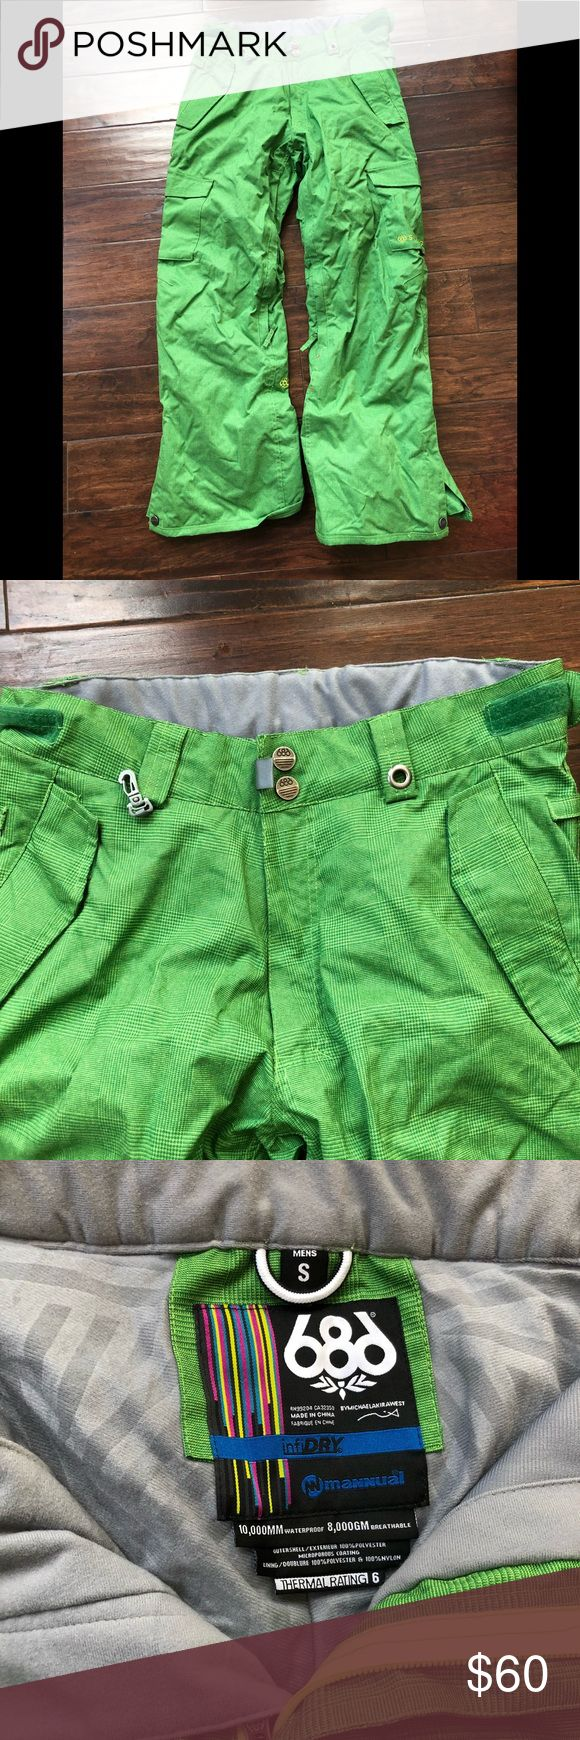 686 snowboard pants men's size small Great condition.  Cargo style men's snowboard pants in green.  No rips or tear.  Worn only a couple of times. 686 Pants